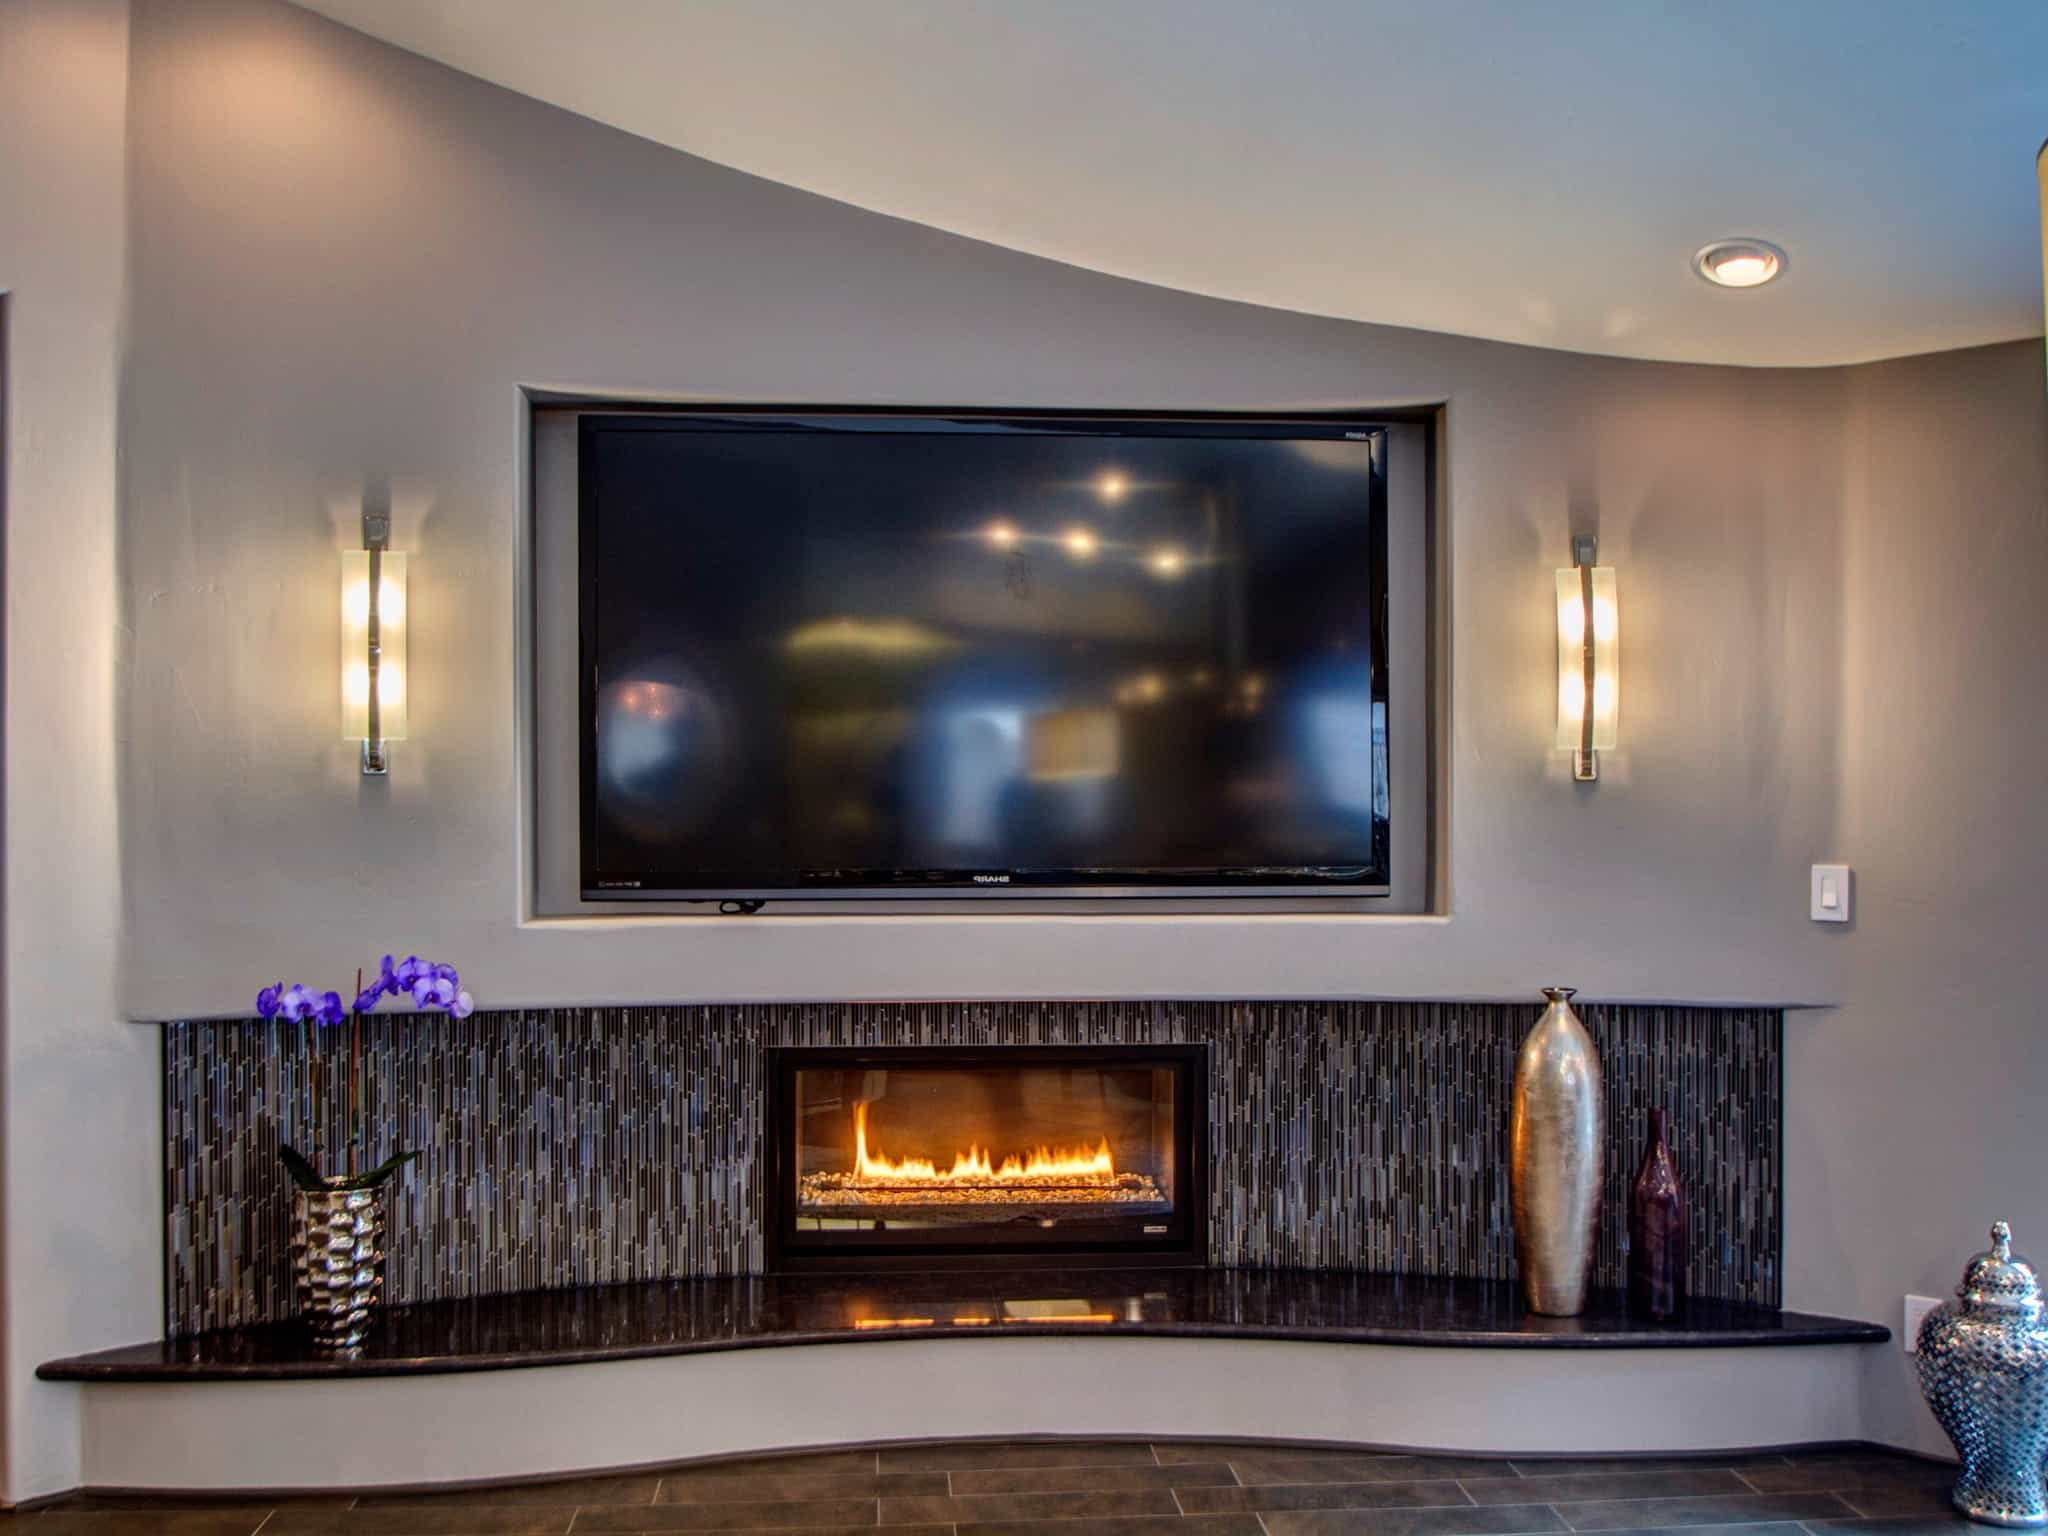 Featured Image of Modern Shiny Mosaic Tile The Black Quartz And Contemporary Gas Fireplace